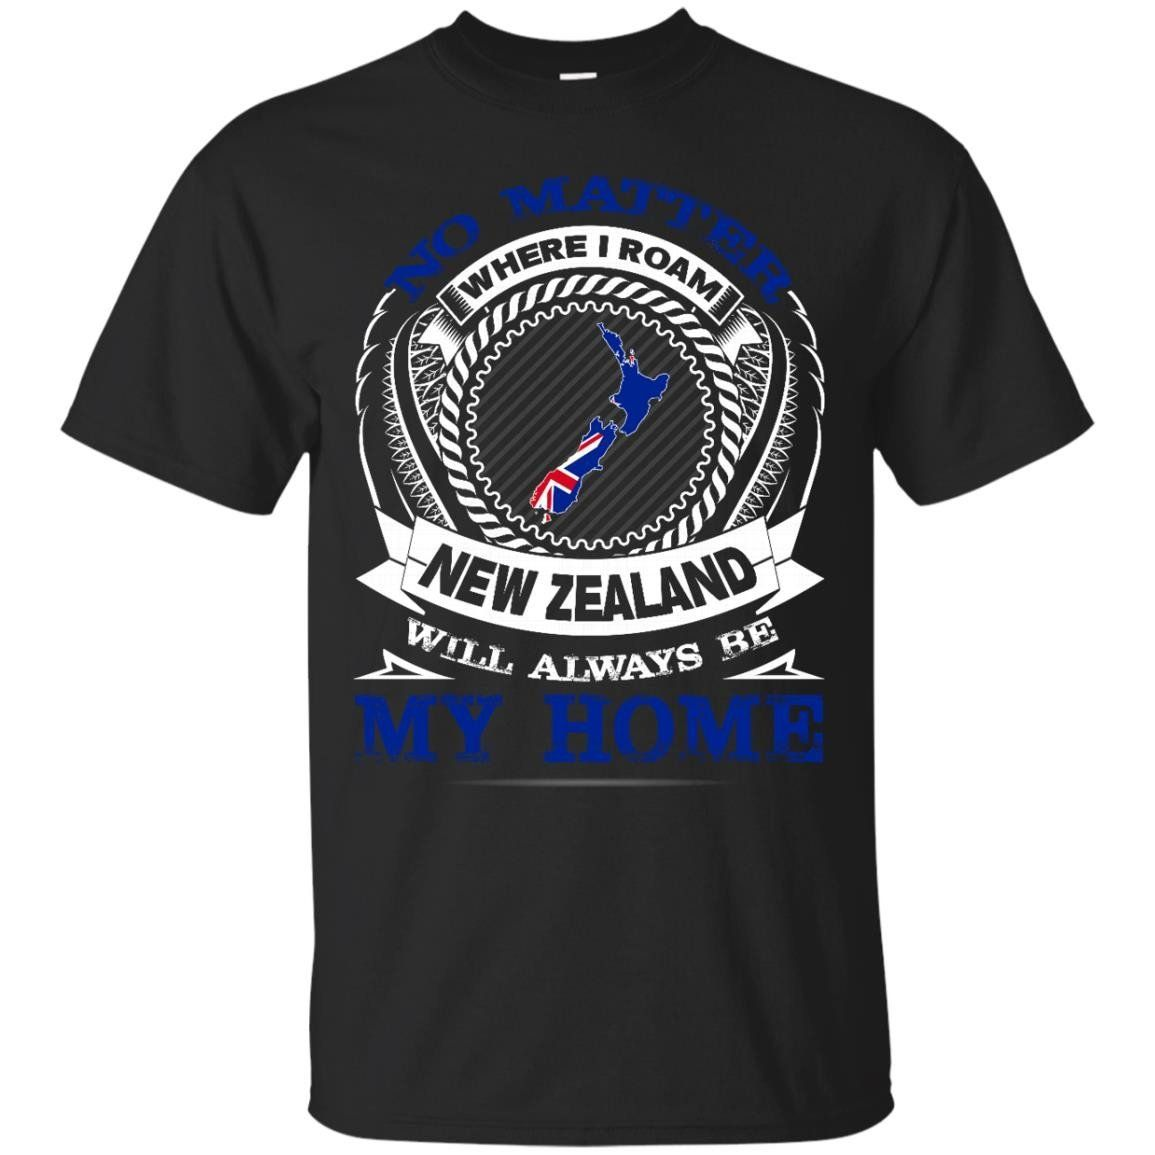 New Zealand T Shirts New Zealand Will Always Be My Home Shirts